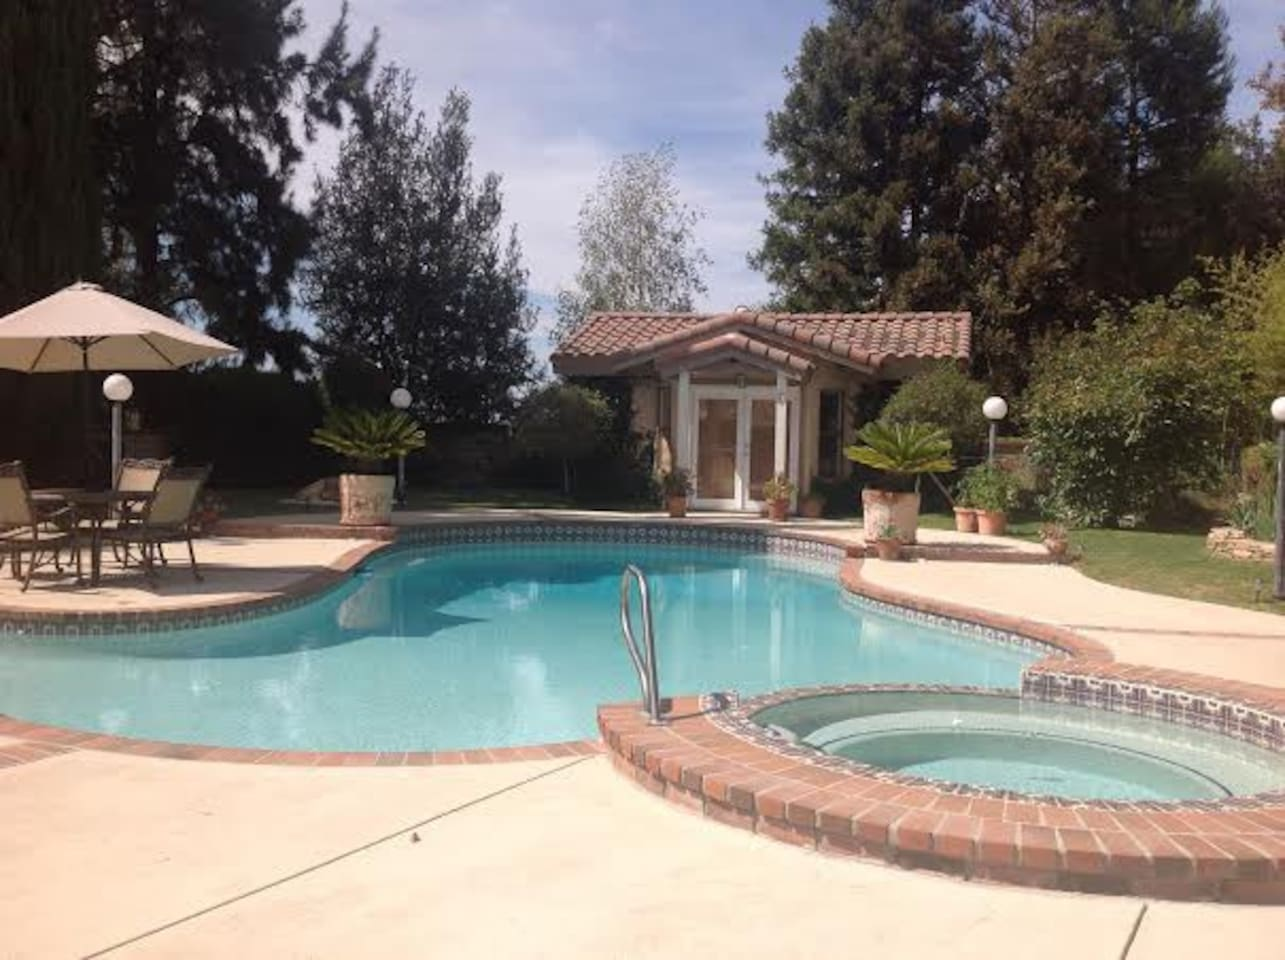 Guest house with pool and jacuzzi